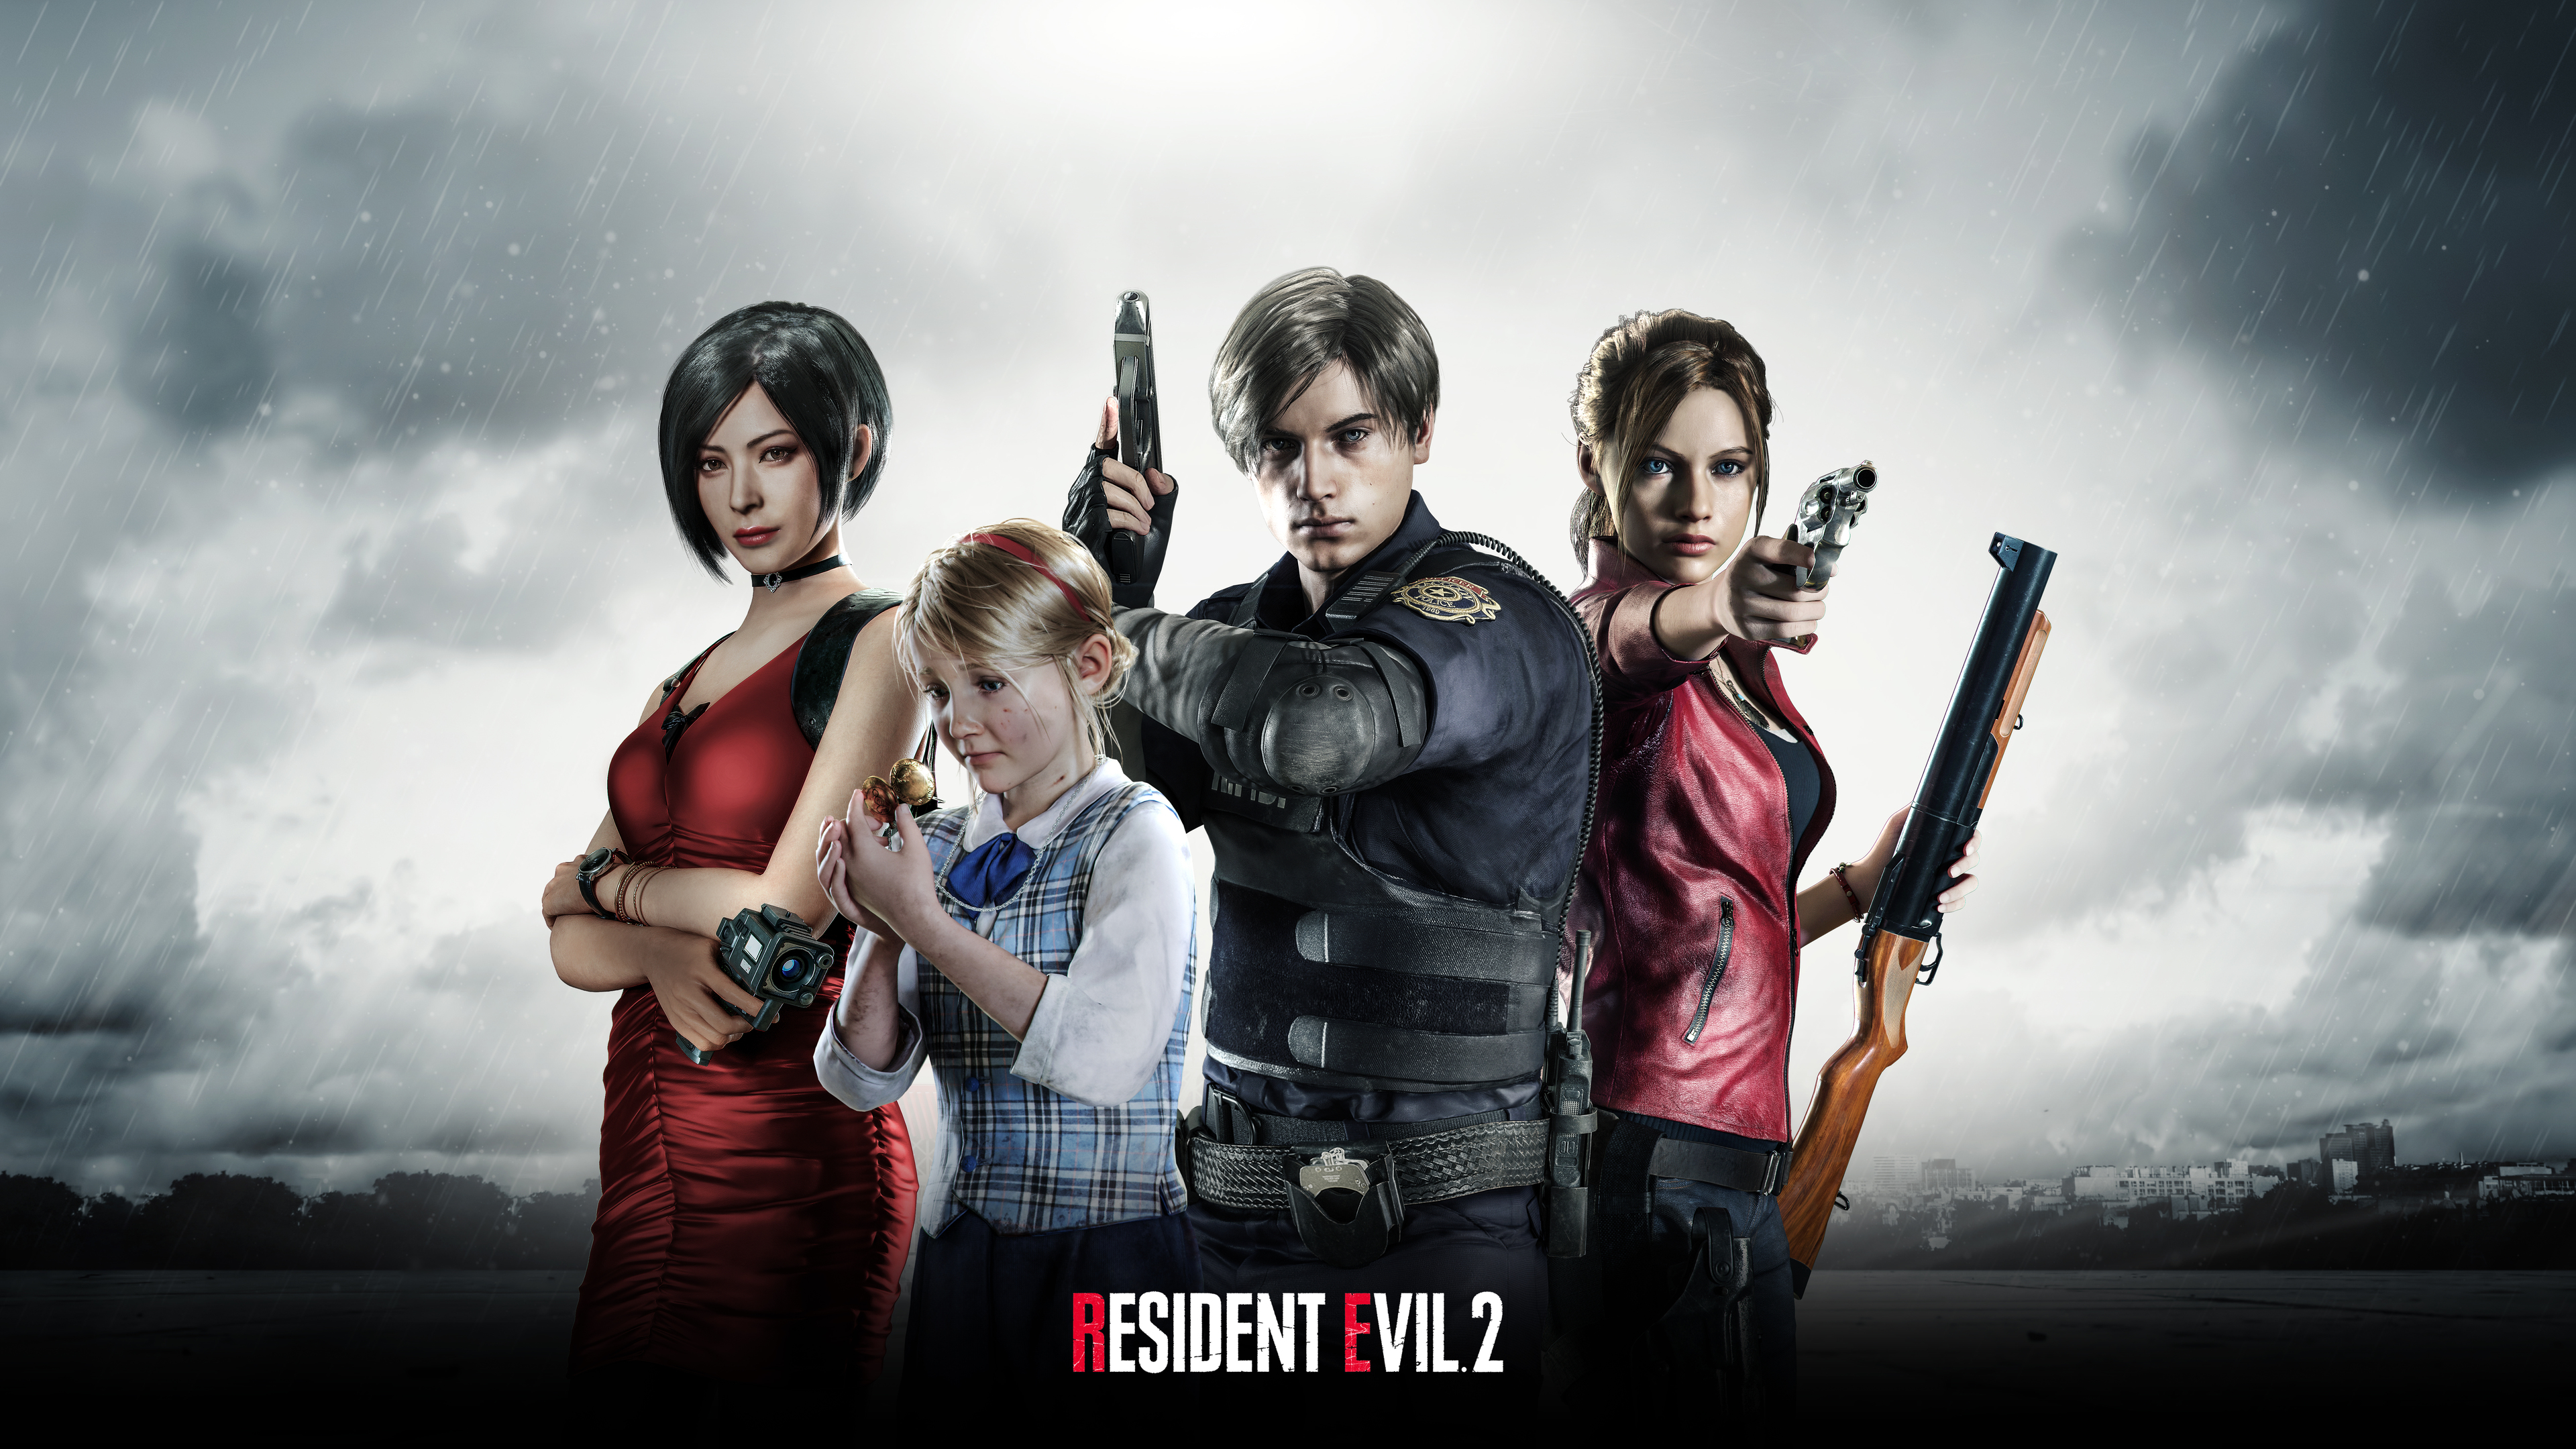 Wallpaper 4k Resident Evil 2 2019 4k 10k Wallpapers 2019